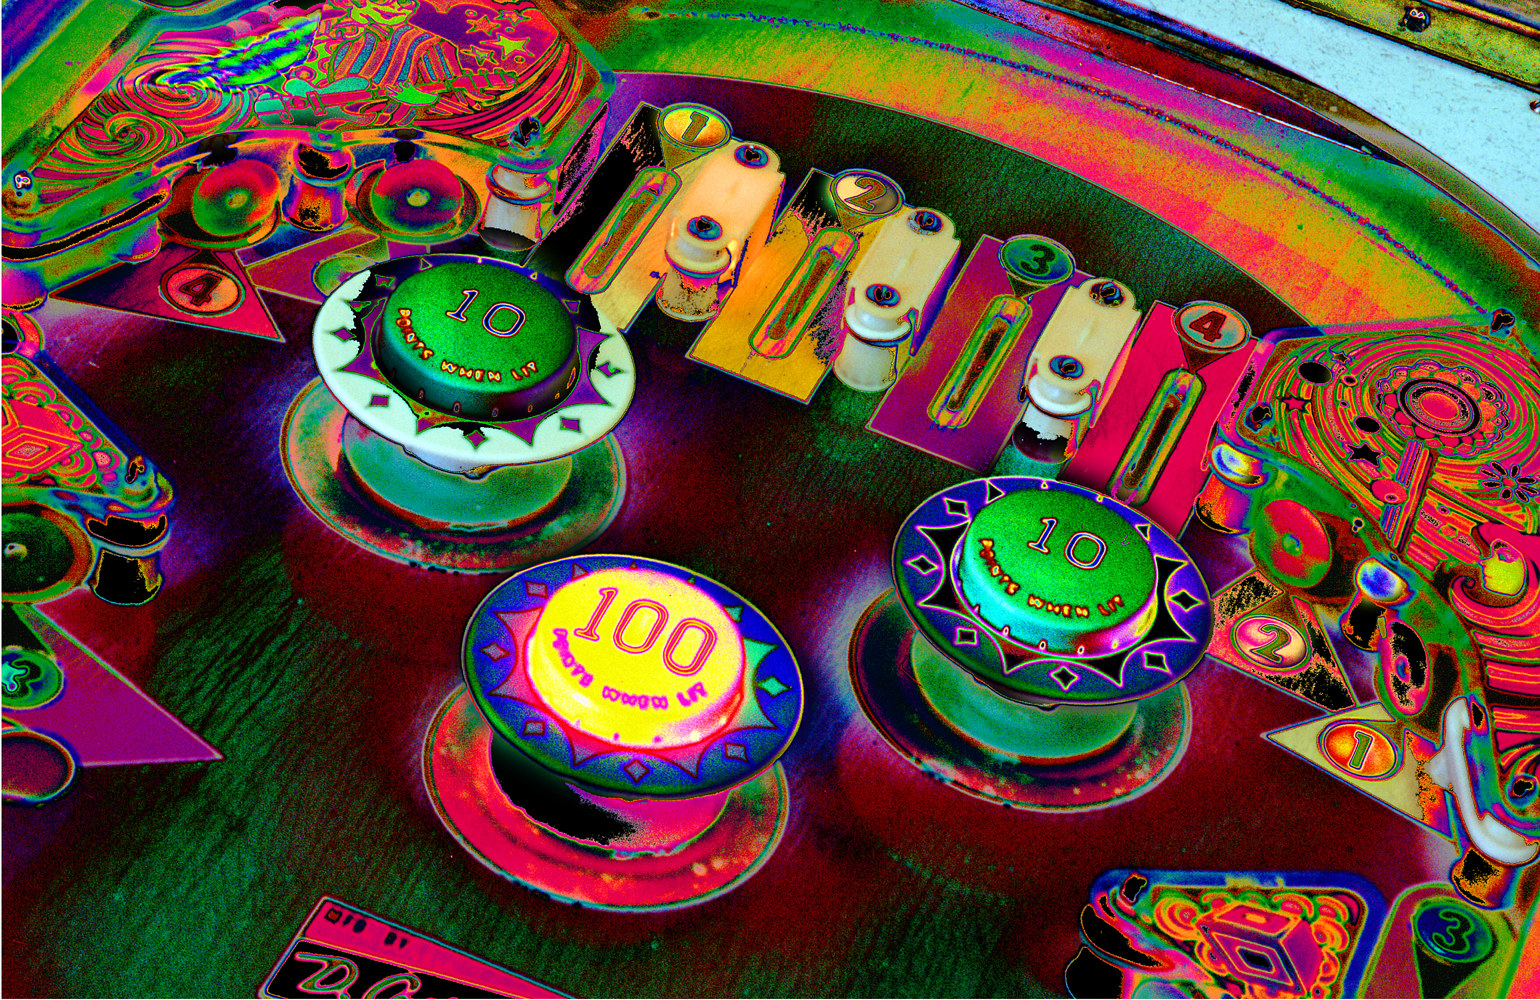 Pinball Series #8 by Kathleen Gross